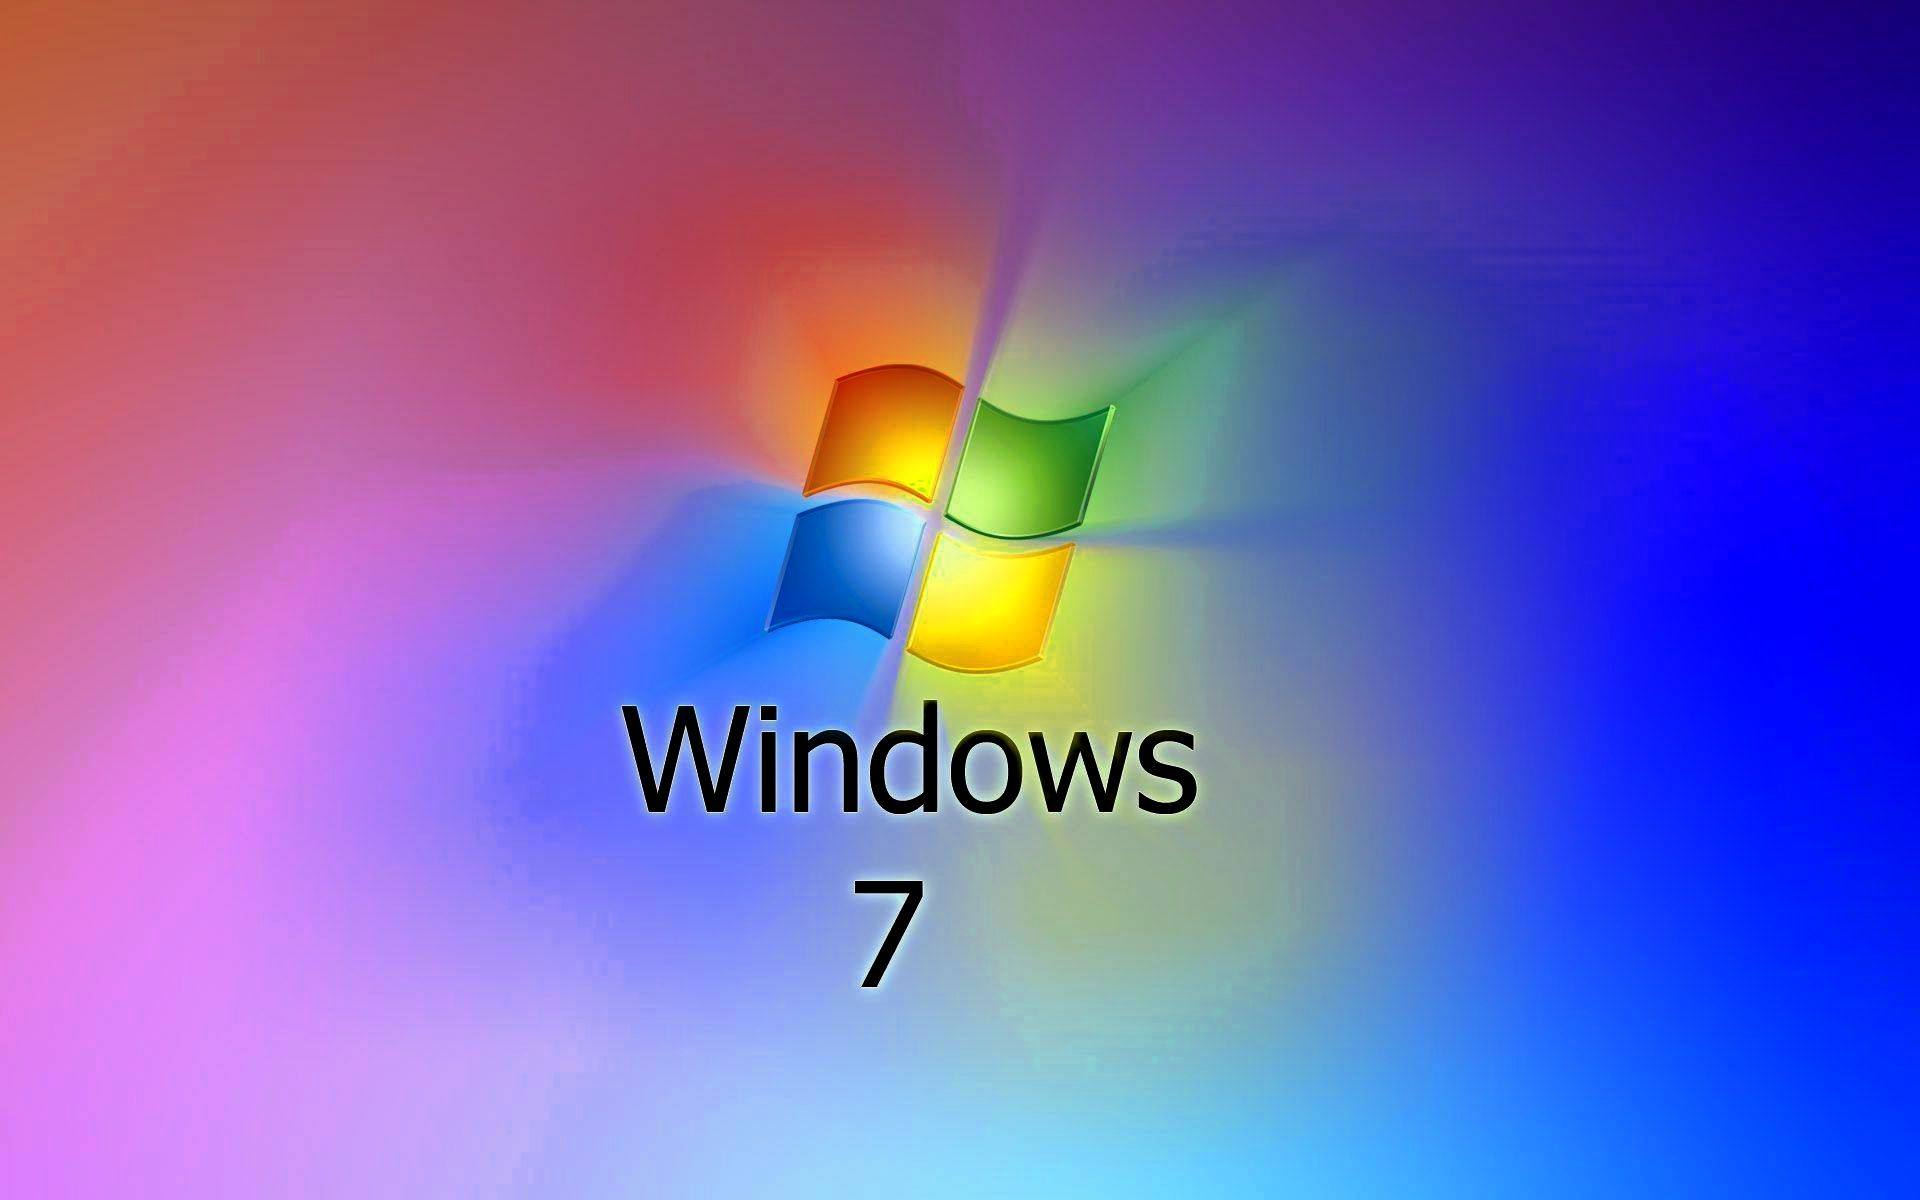 Free Download Desktop Background For Windows 7 | tianyihengfeng